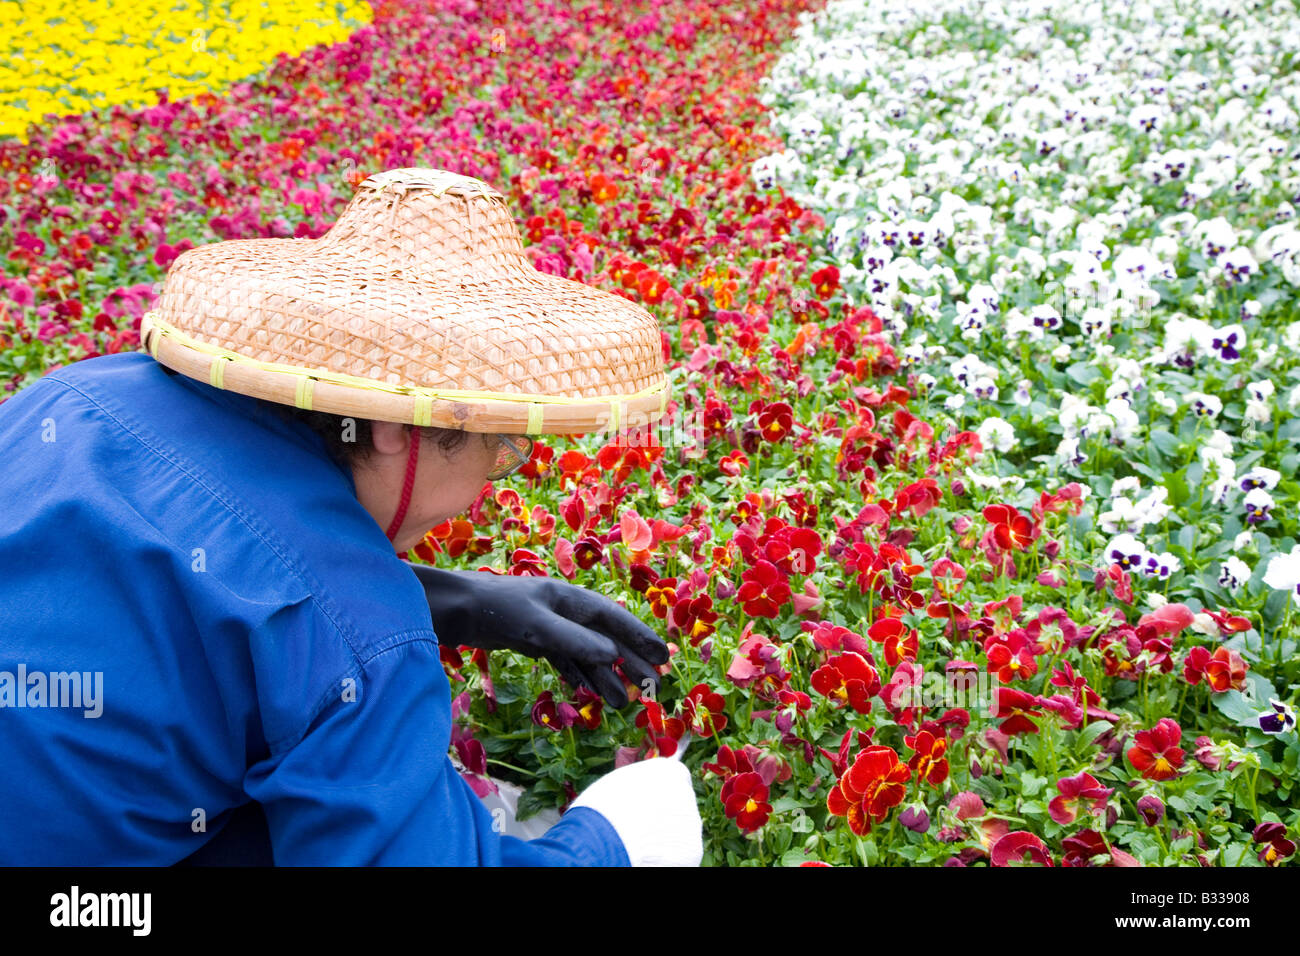 Chinese woman plants flowers wearing traditional woven hat Stock Photo